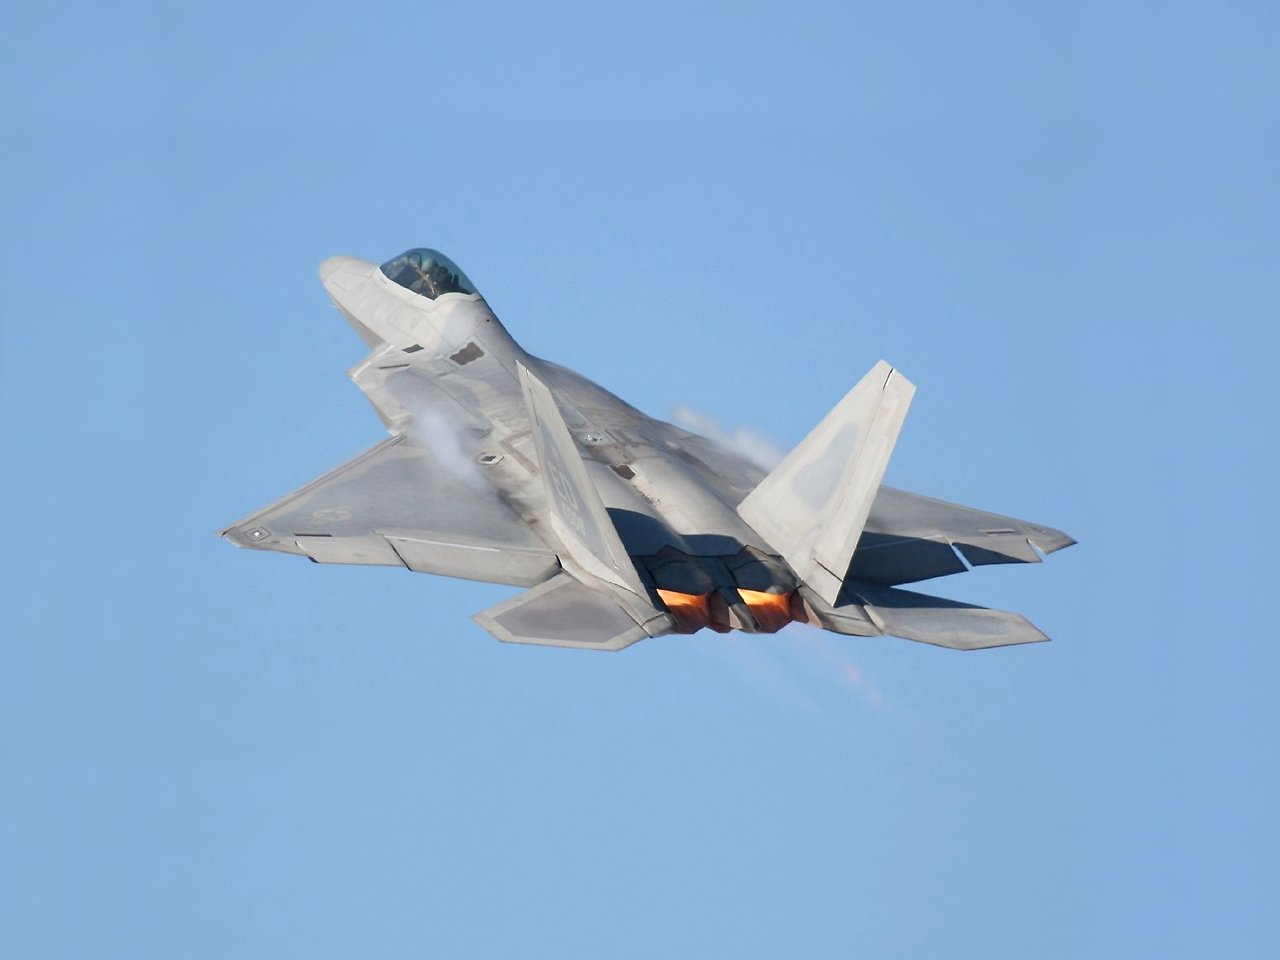 F22 Wallpaper 11053 Hd Wallpapers in Aircraft   Imagescicom 1280x960